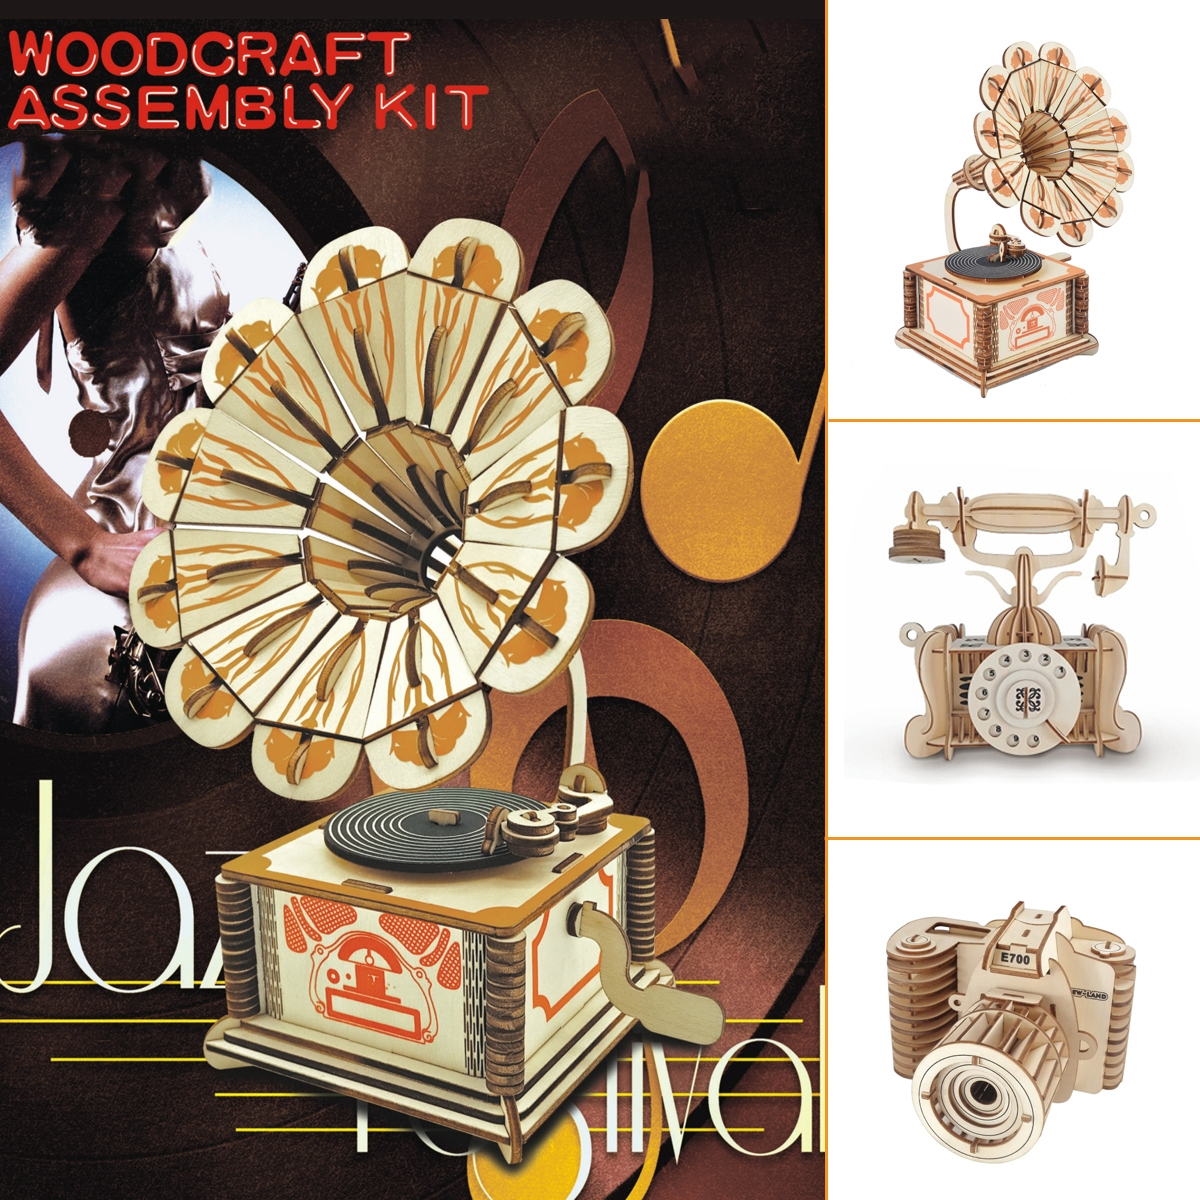 3D Woodcraft Assembly Retro-electric Appliance Series Kit Jigsaw Puzzle Decoration Toy Model for Kids Gift